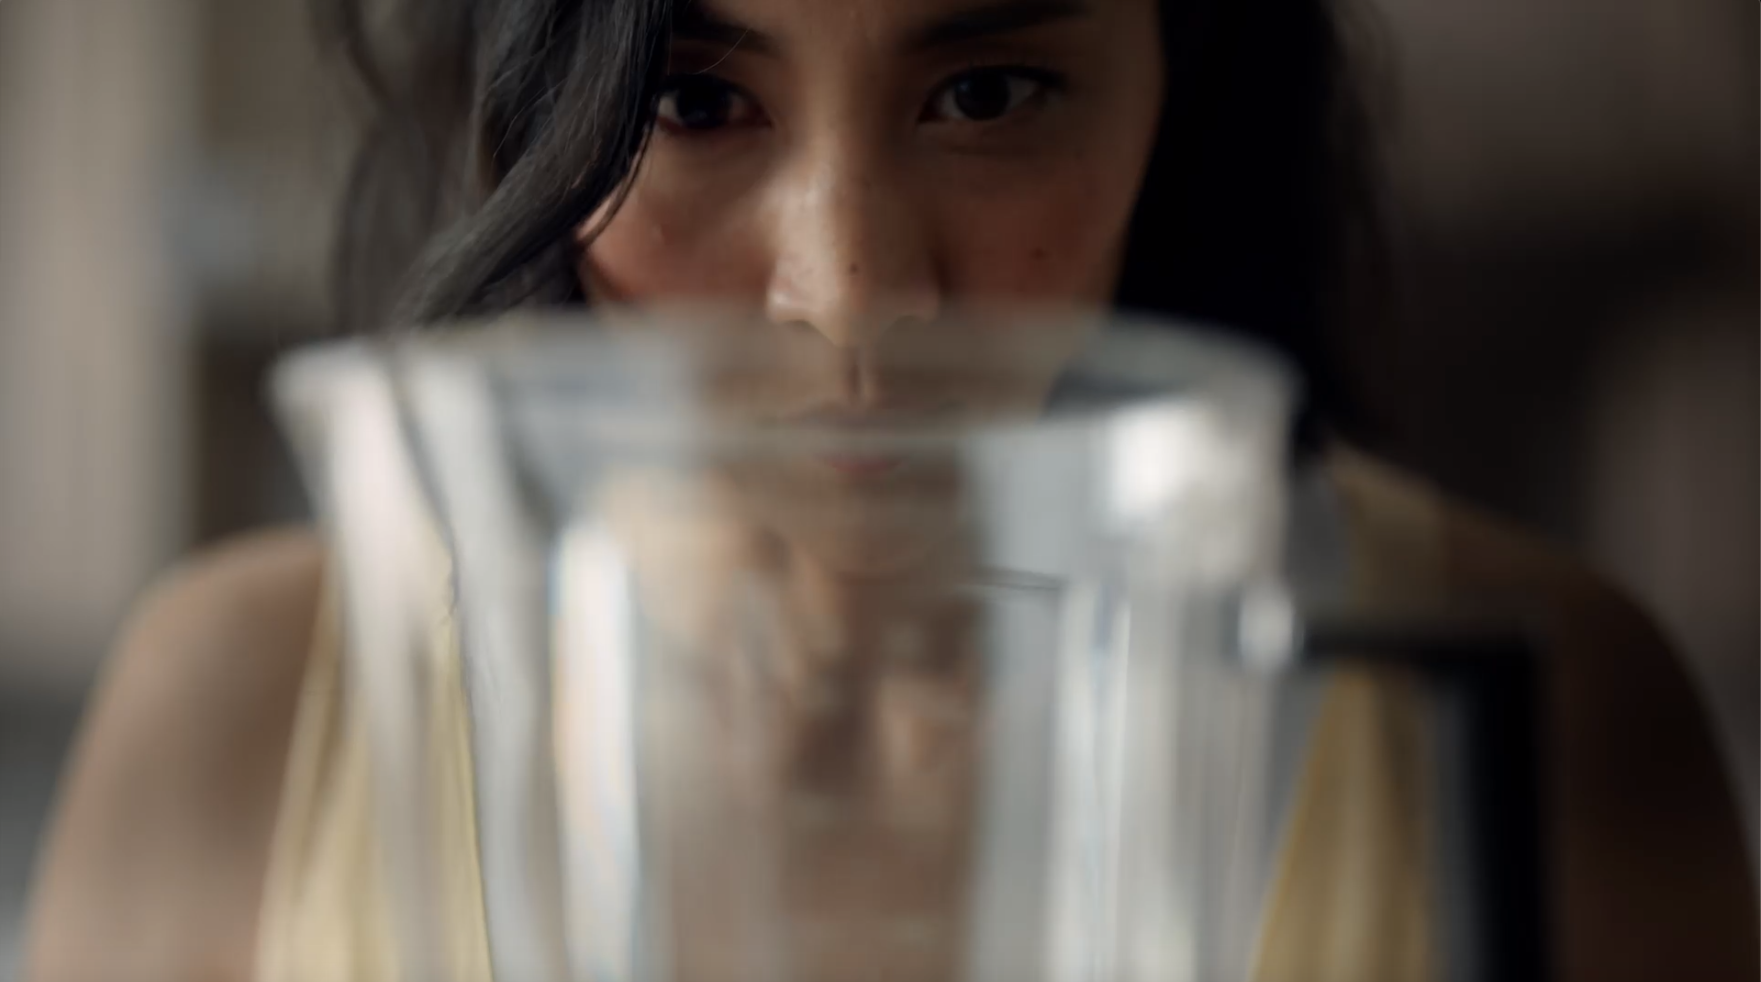 nib launches new 'Reclaim Your Health' communications campaign via Saatchi & Saatchi